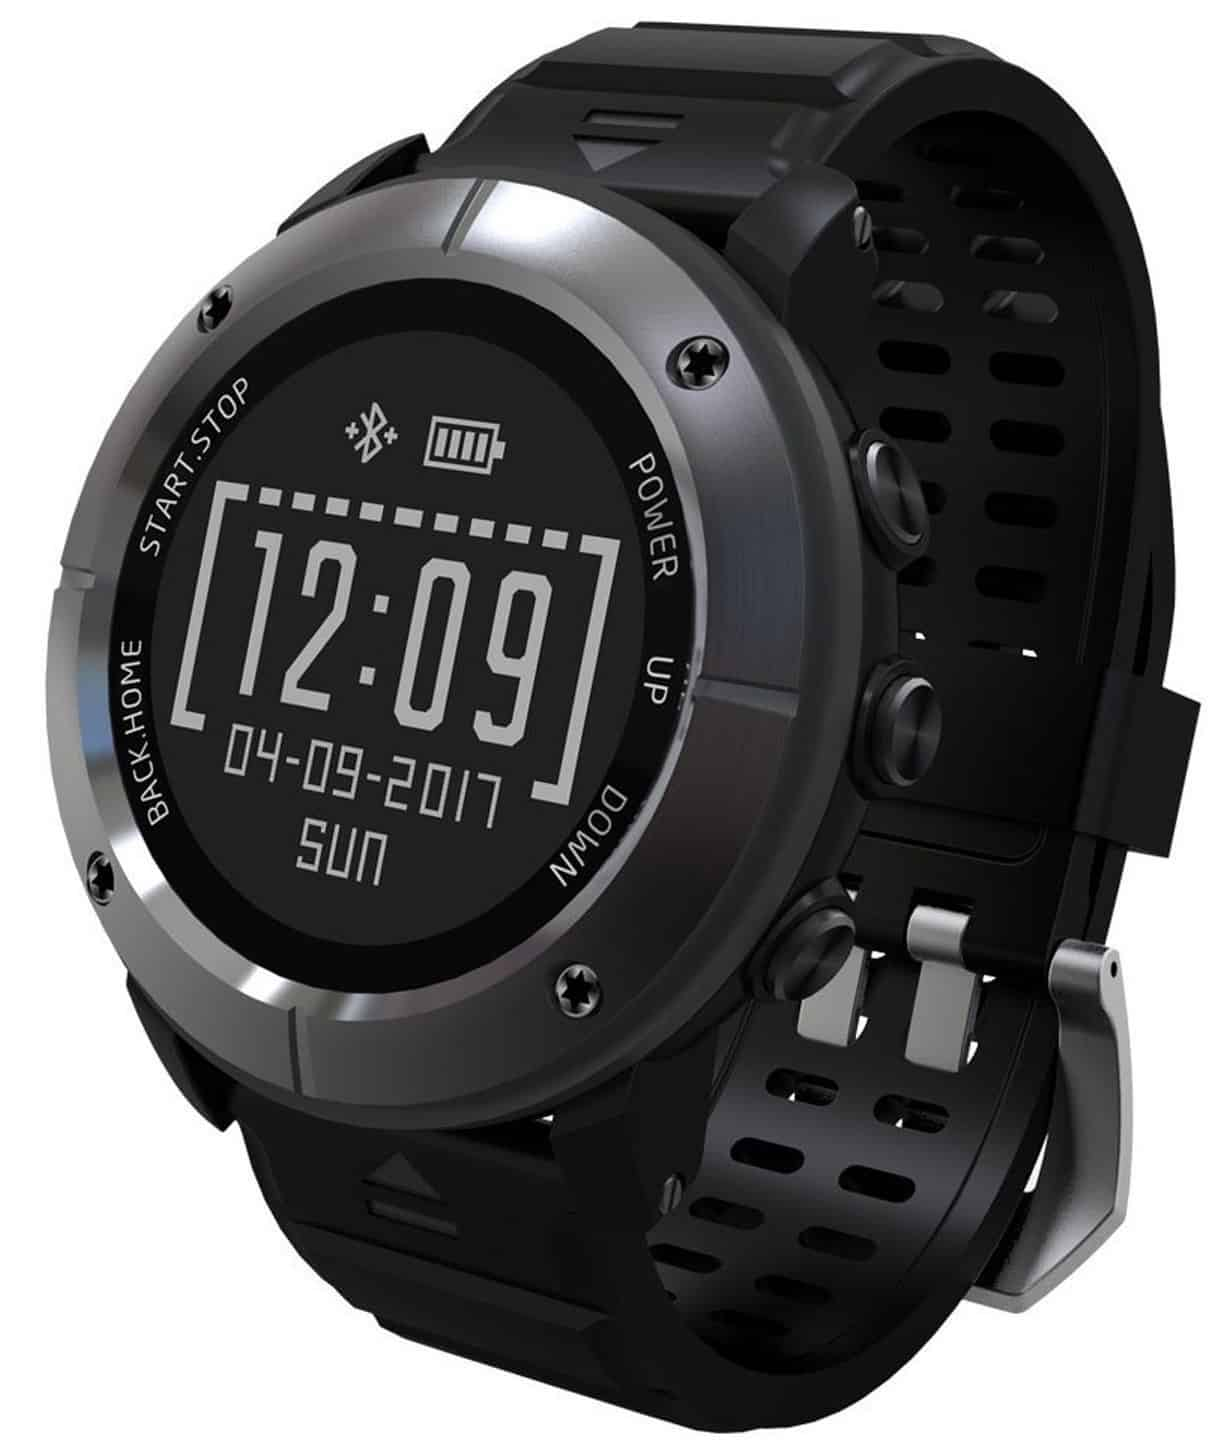 UWEAR Multi-Sport Smart Watch GPS